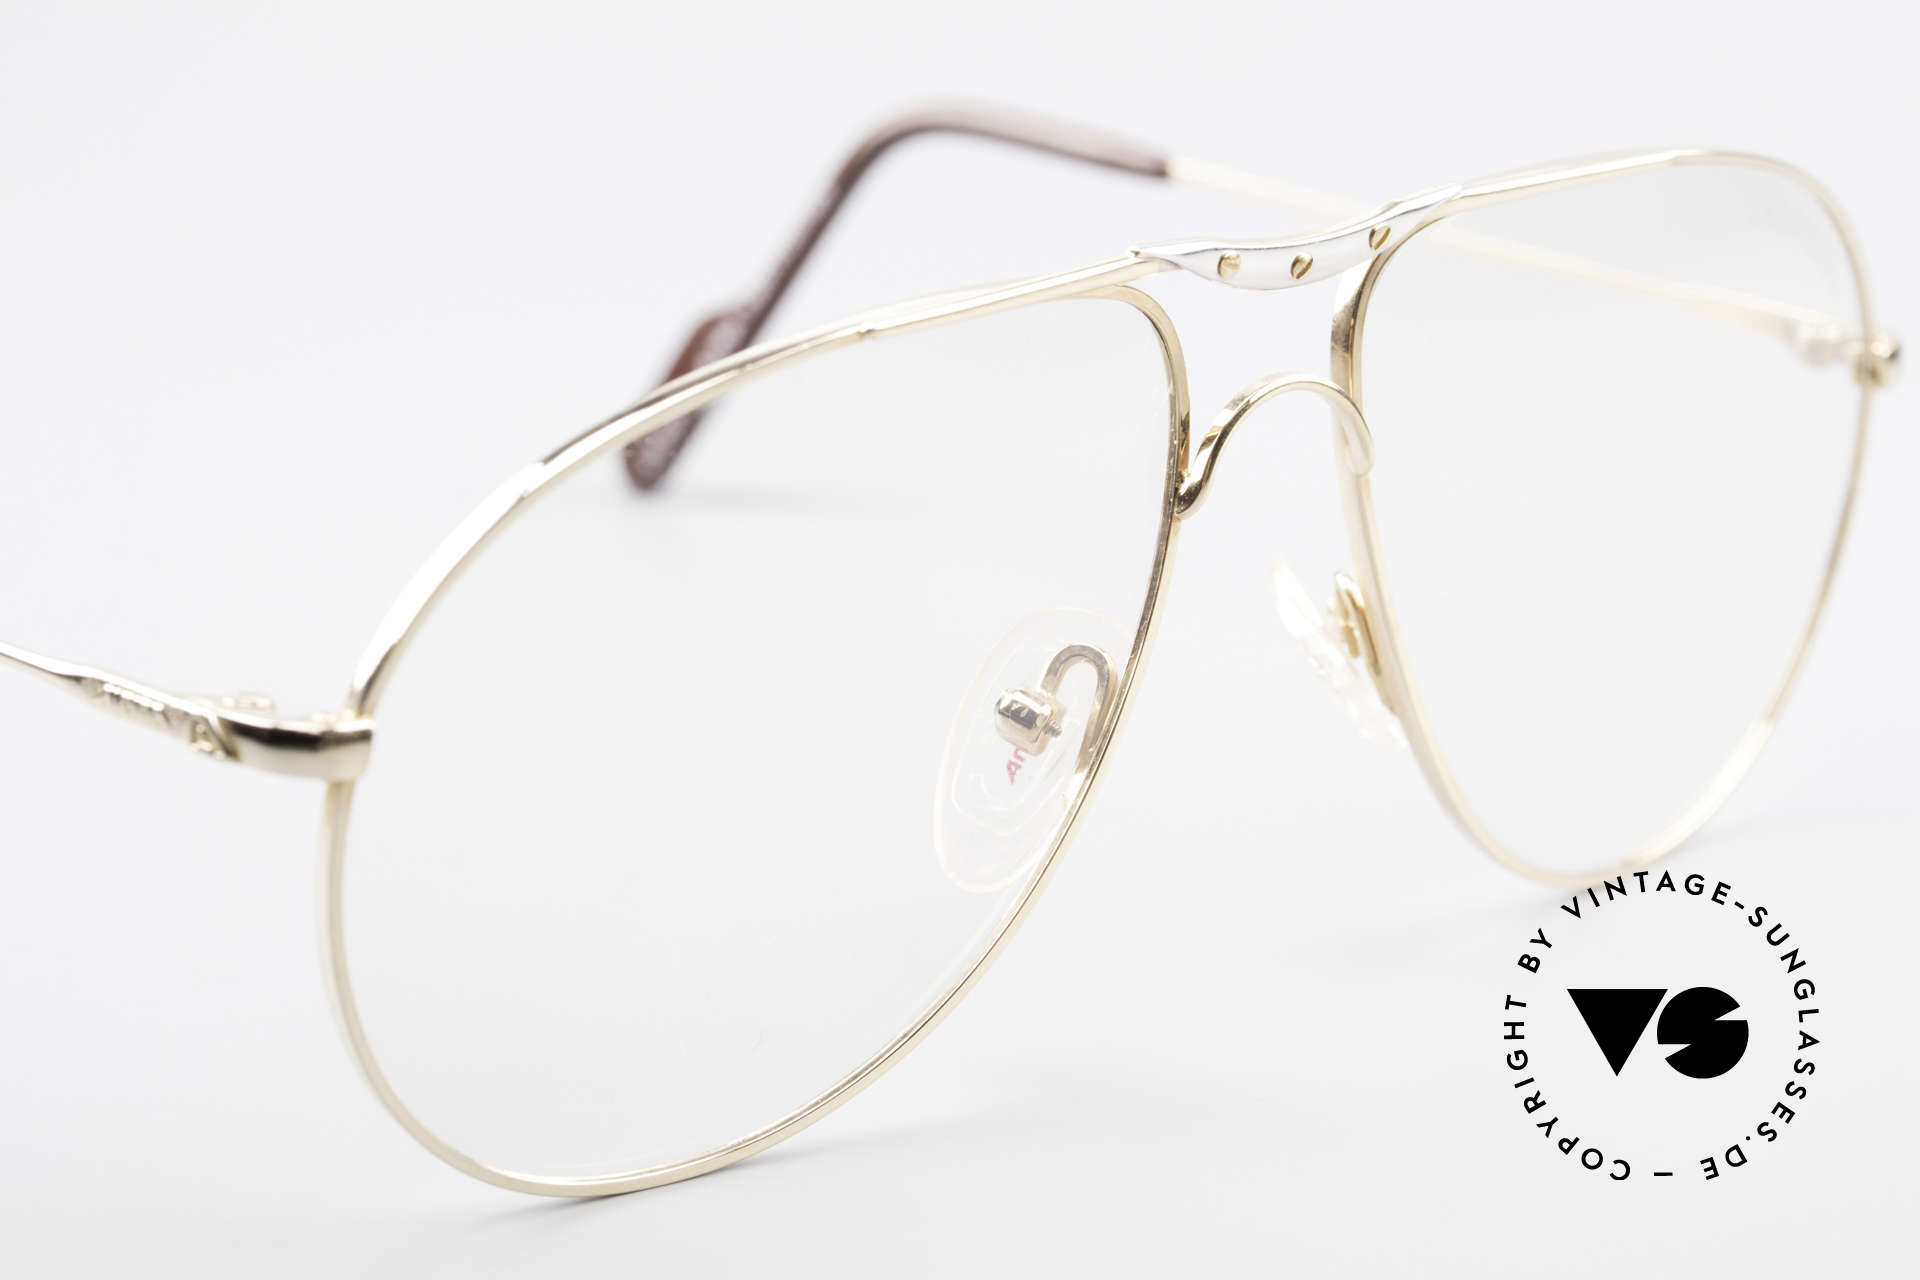 Alpina M1F751 Classic Aviator Eyeglasses, NO RETRO eyeglasses, but a 25 years old ORIGINAL!, Made for Men